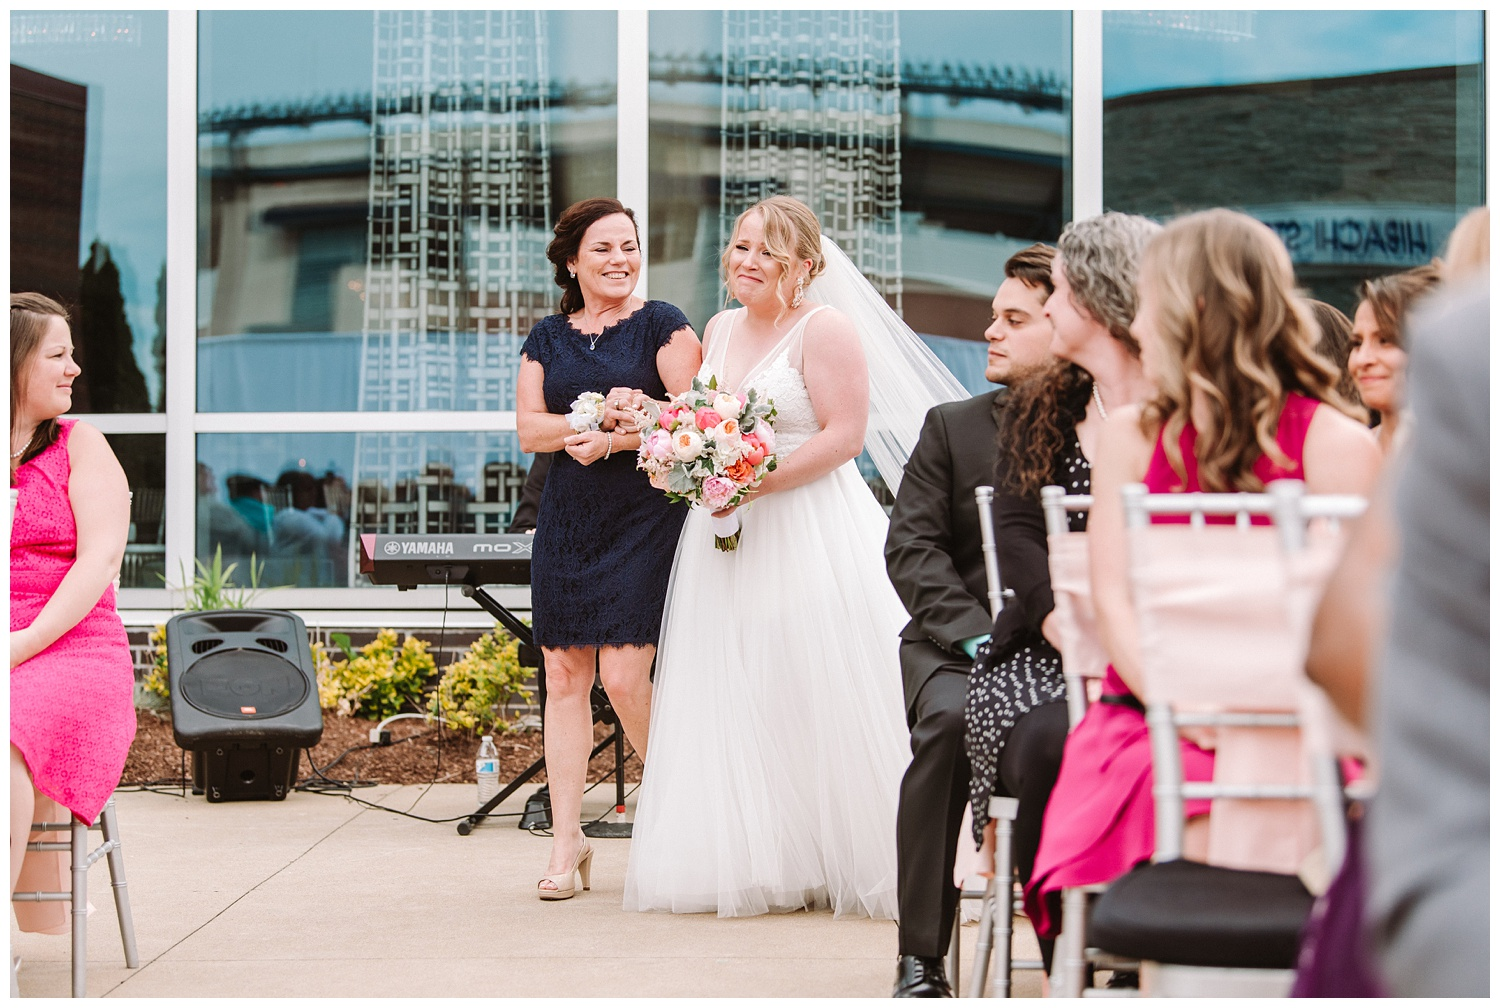 Renaissance Hotel Gillette Stadium Wedding Photographer63.jpg